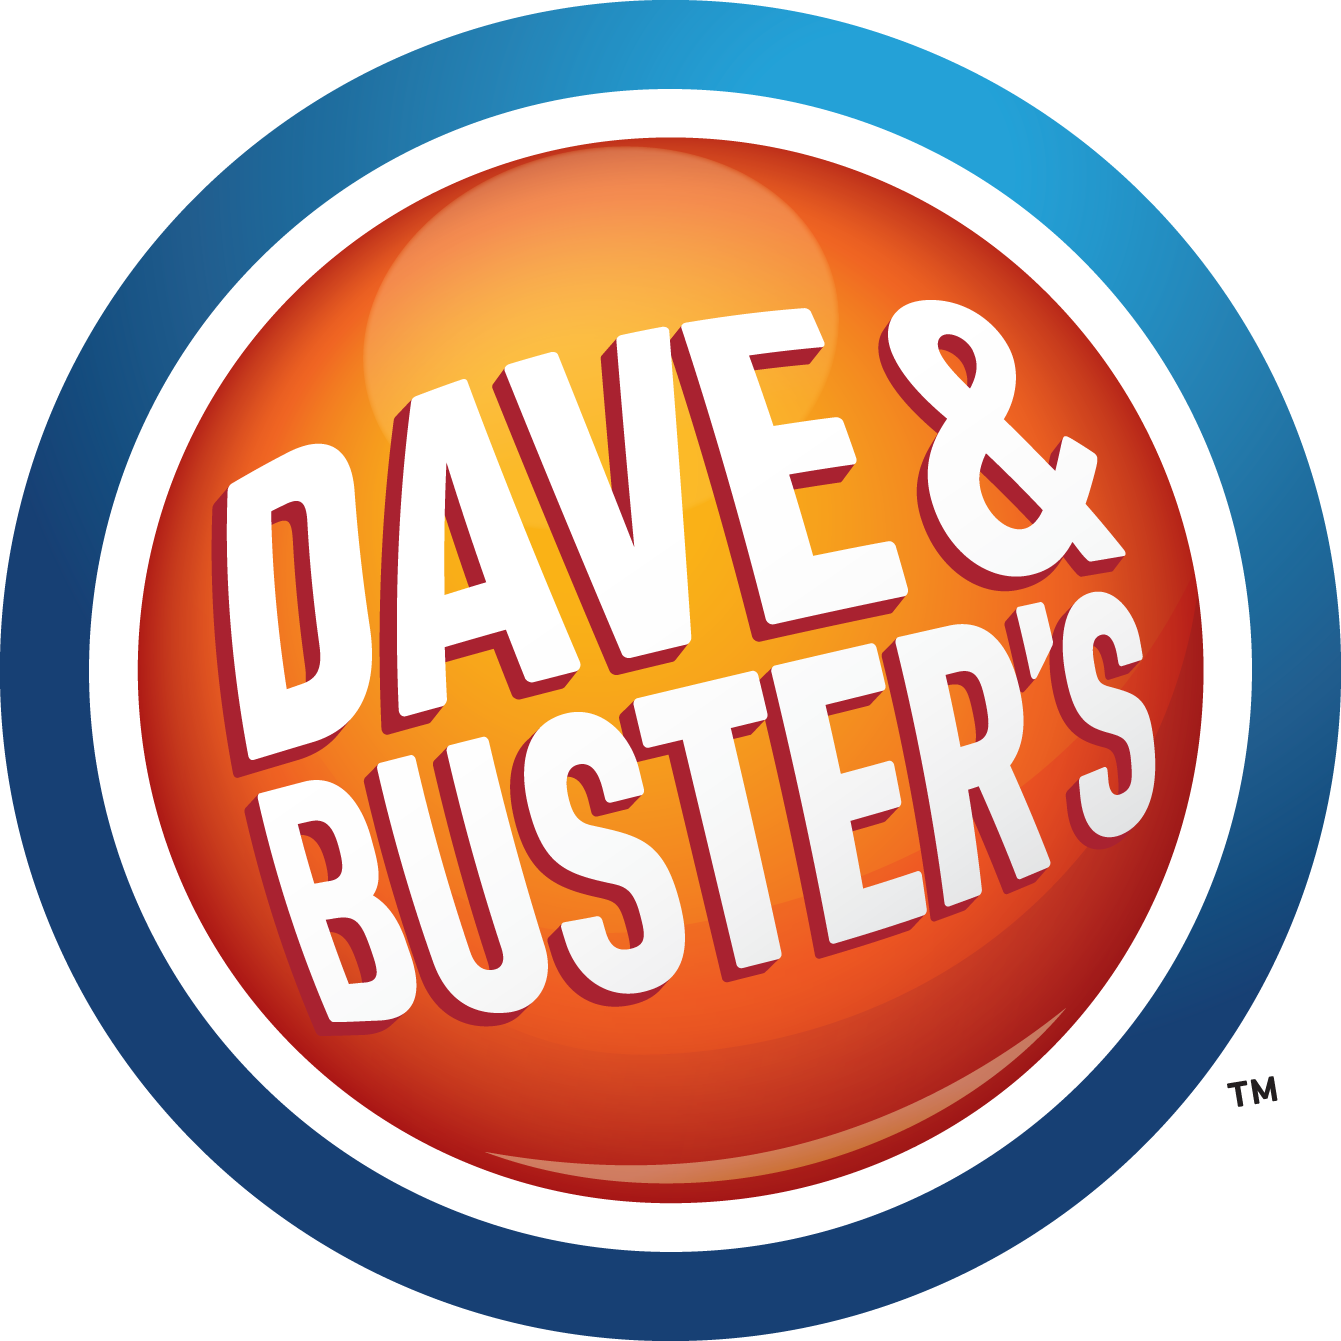 Dave and busters clipart.